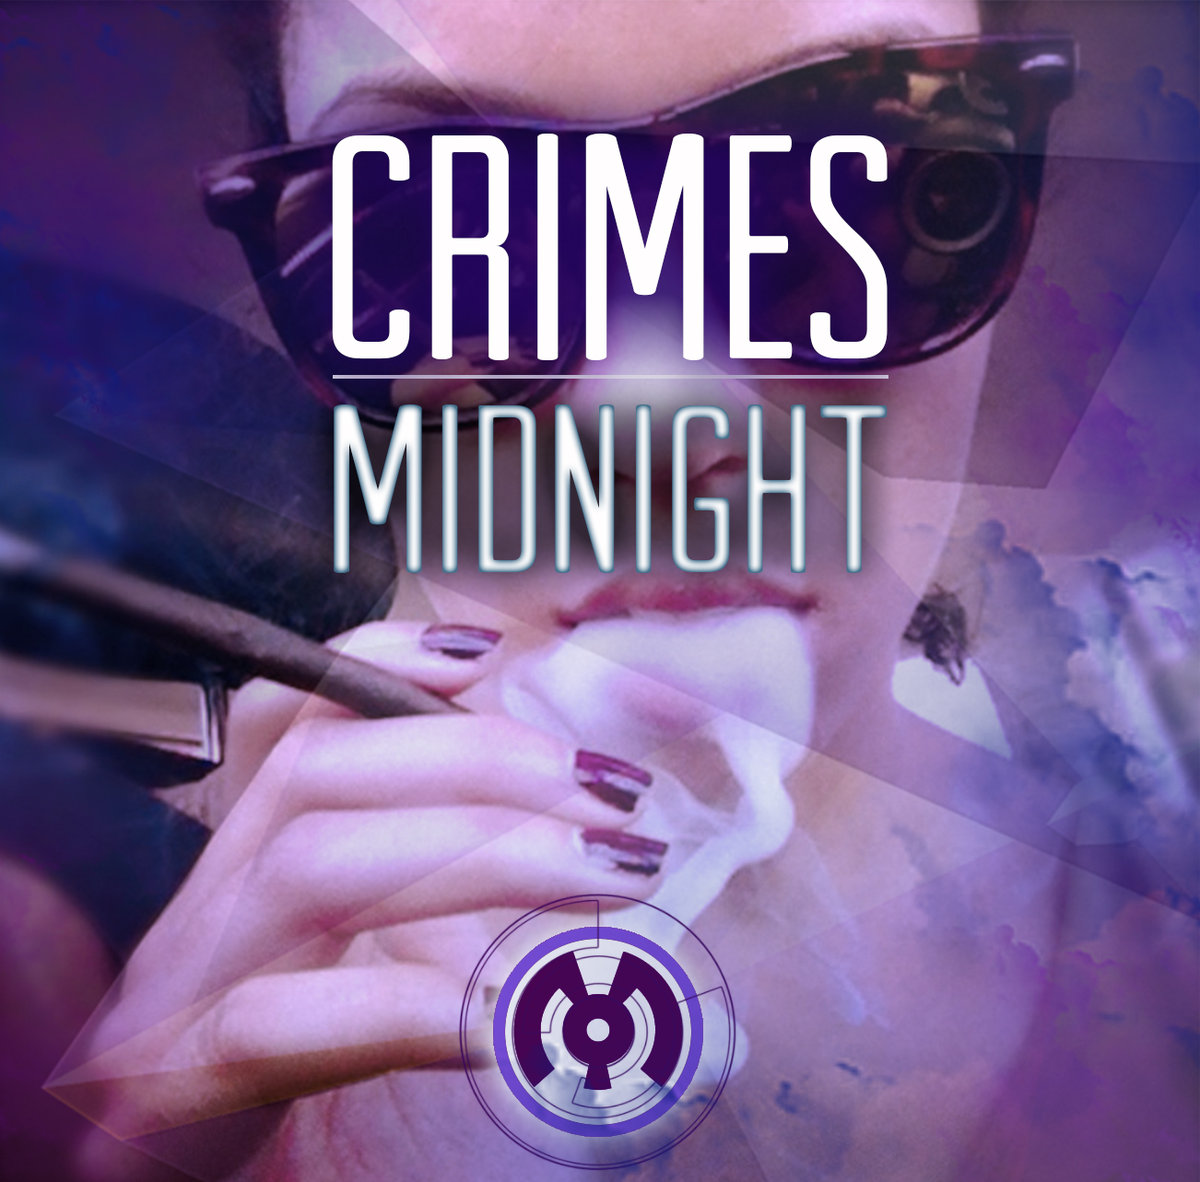 Crimes! - Midnight (artwork)